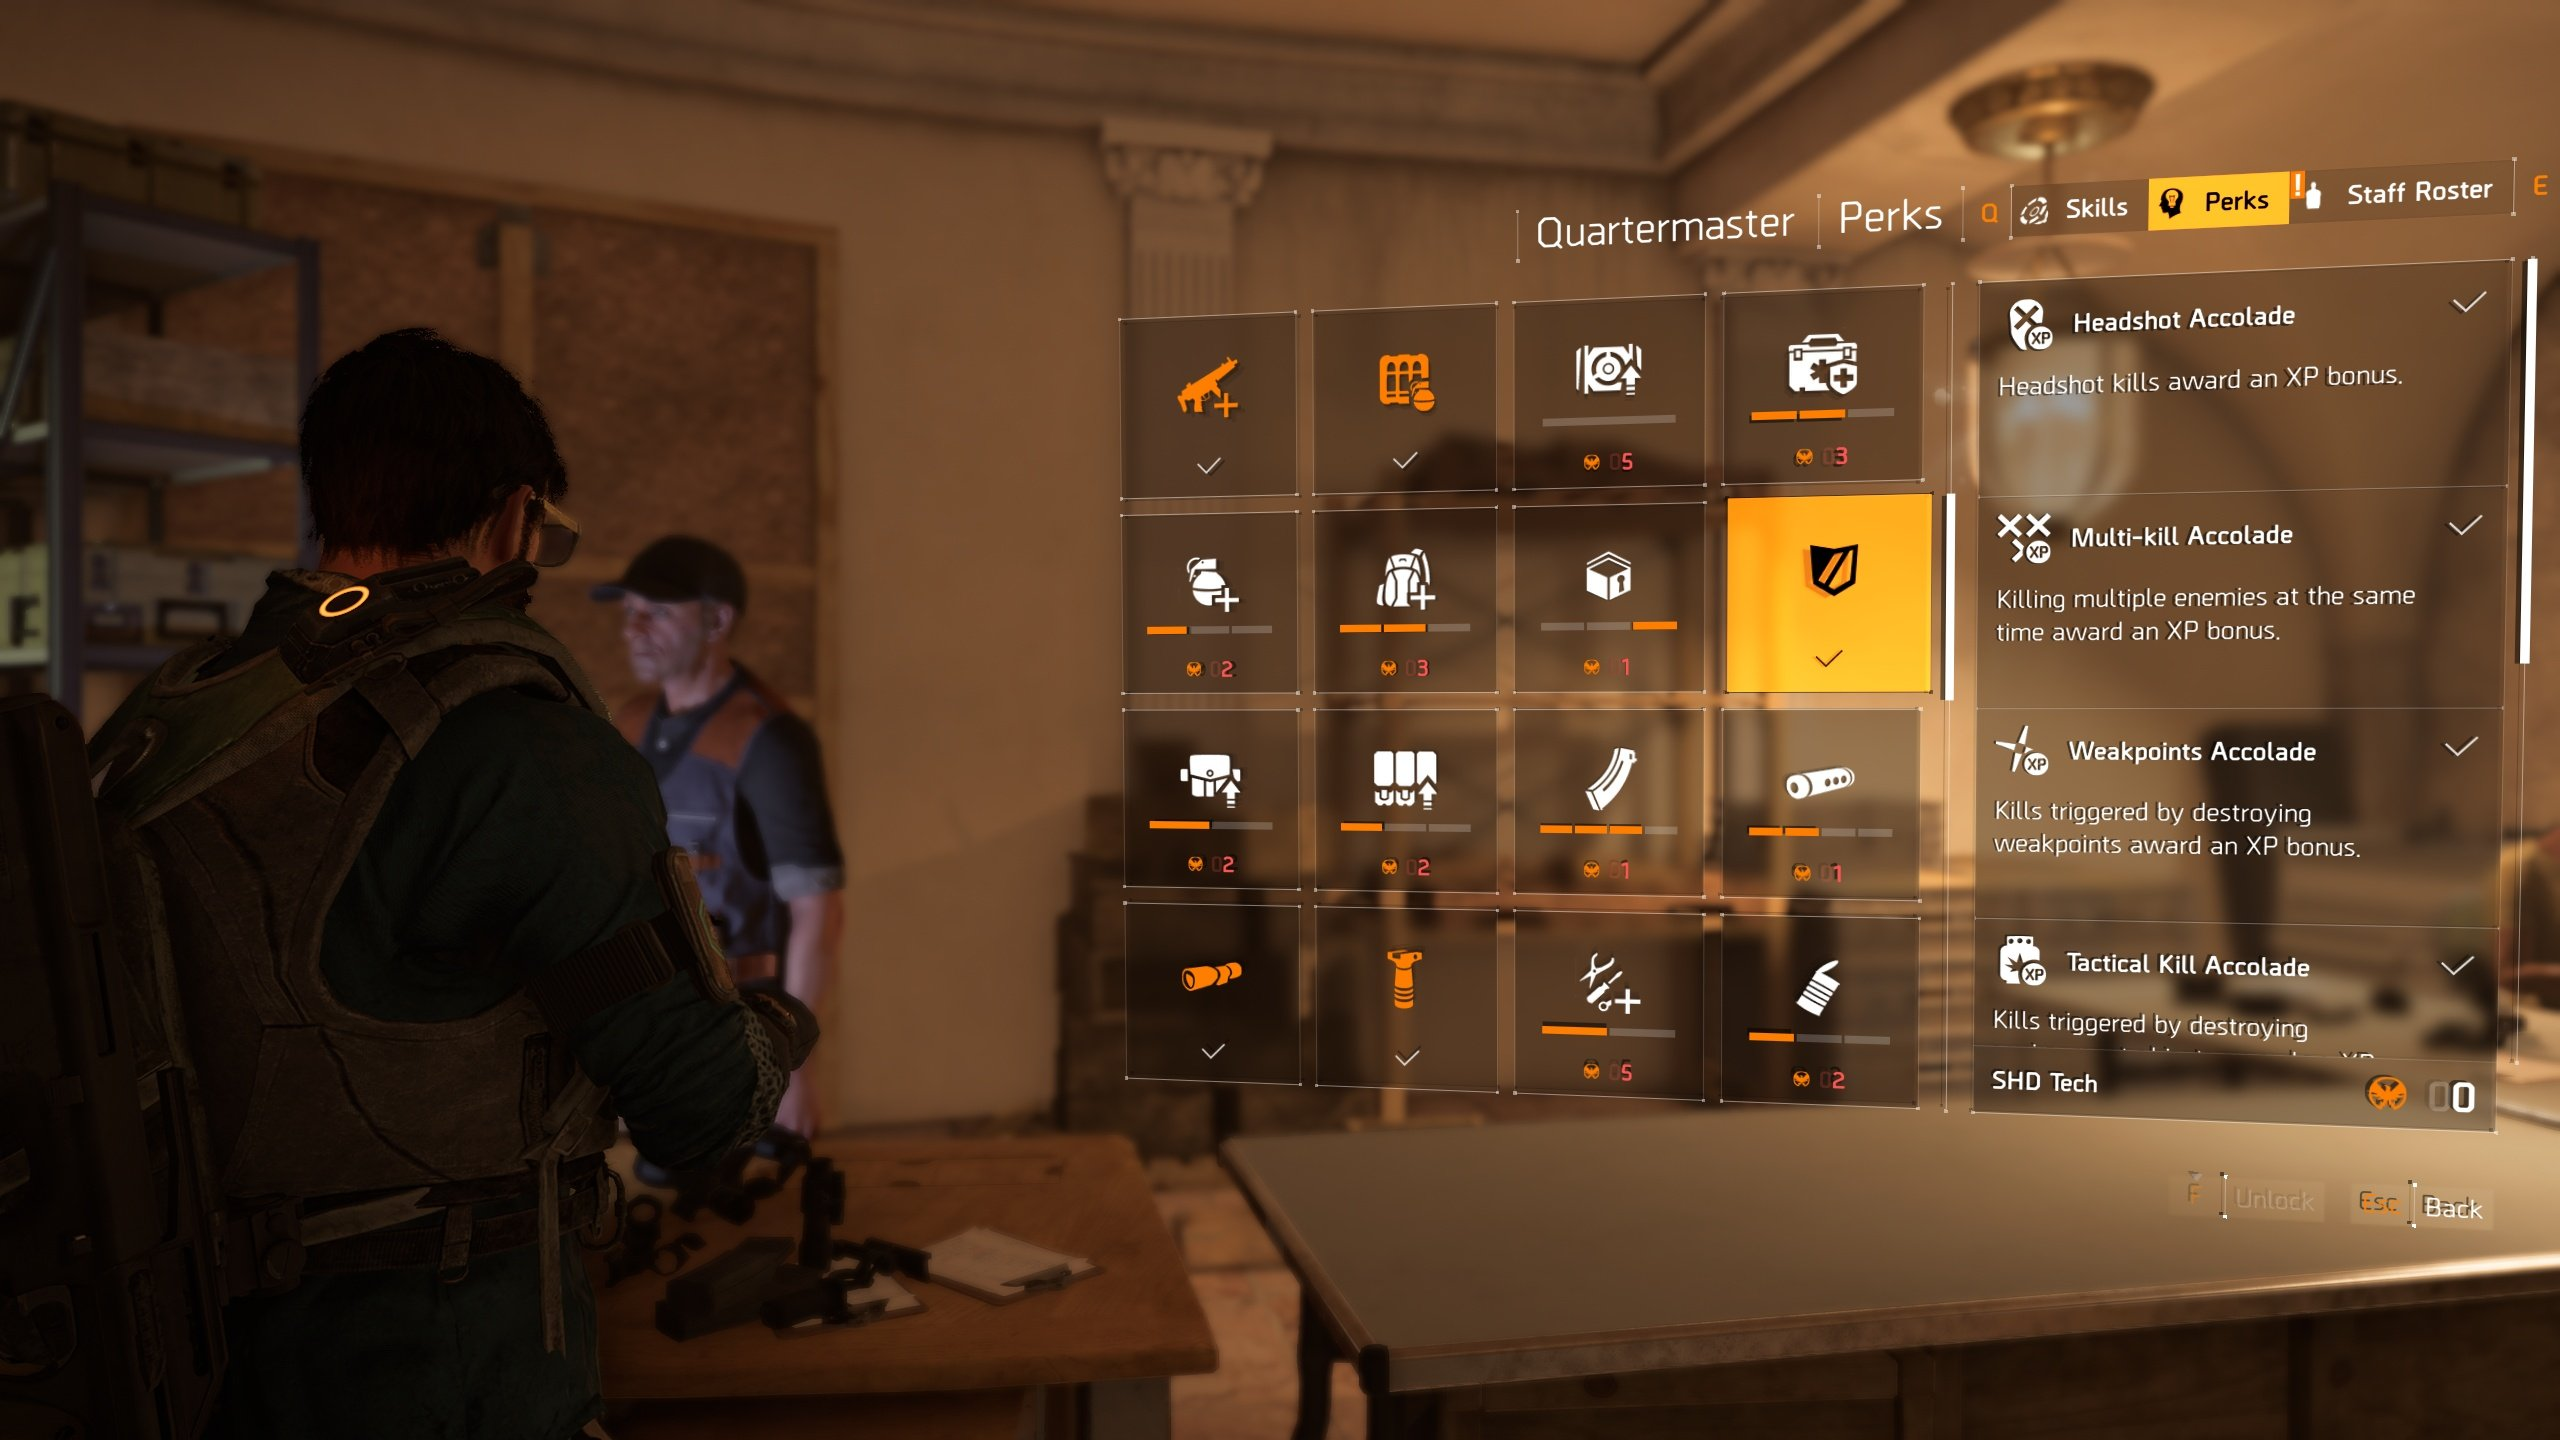 best perks to unlock in The Division 2 - perk list